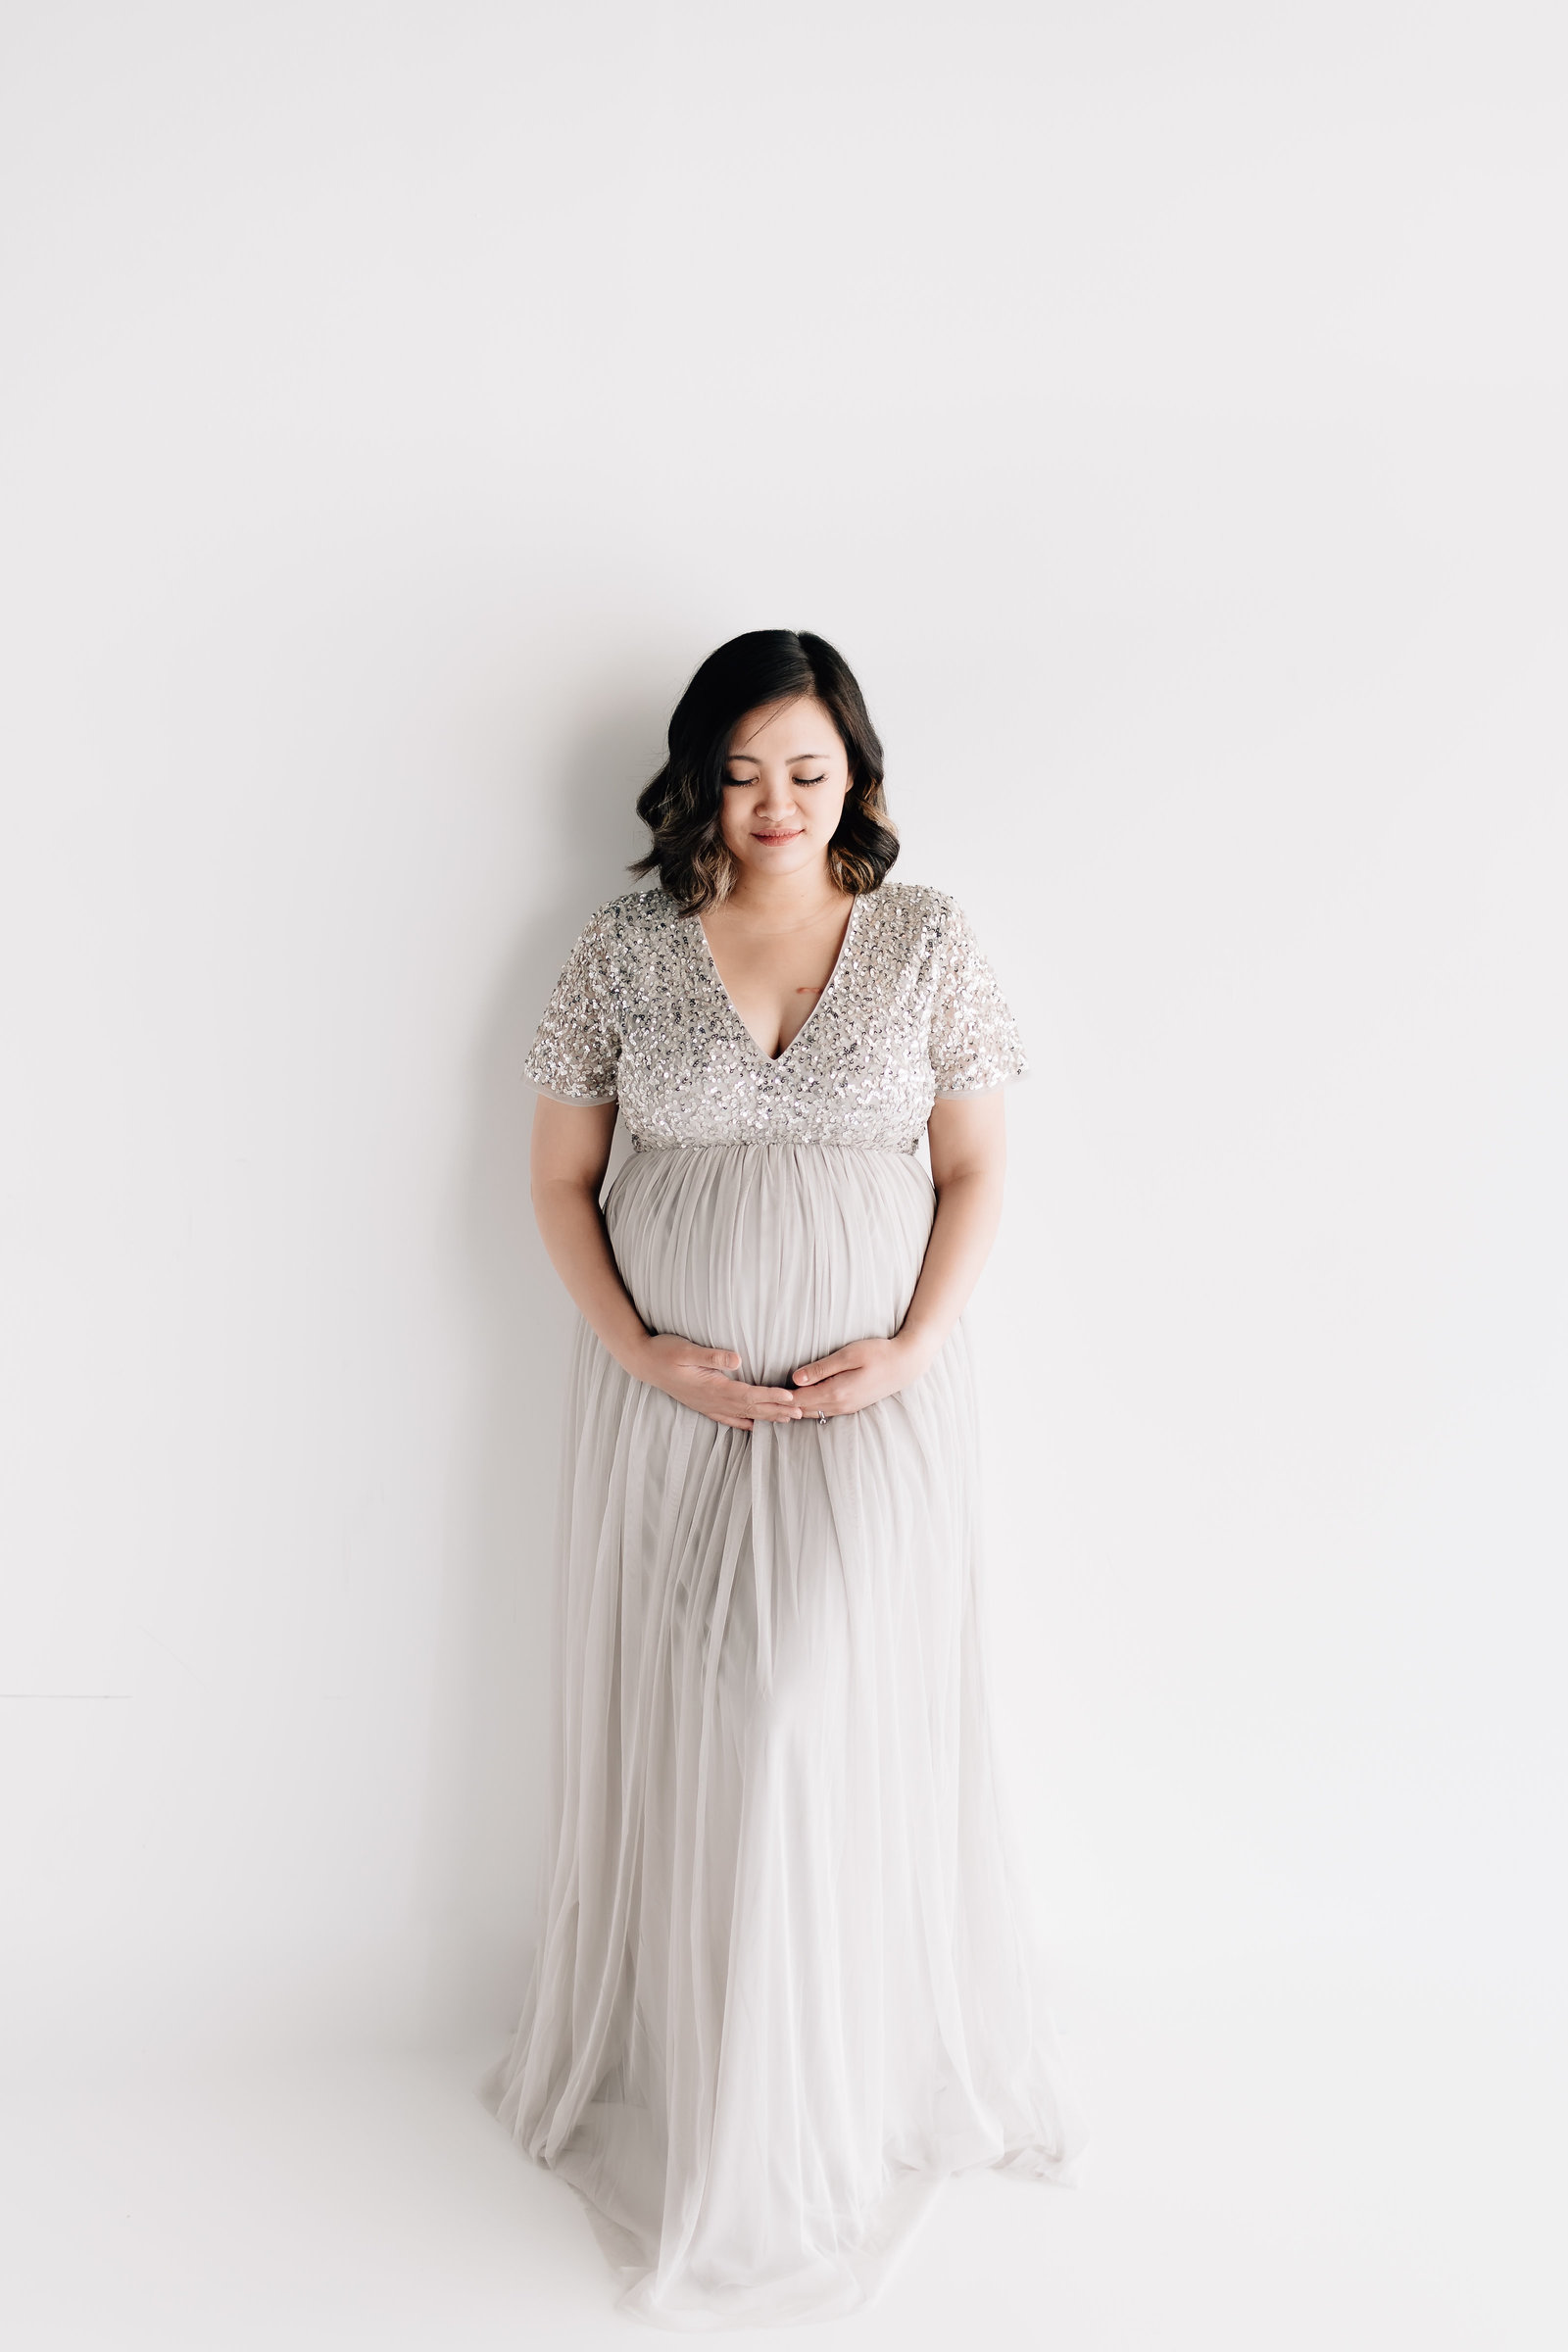 St_Louis_Maternity_Photographer_Kelly_Laramore_Photography2